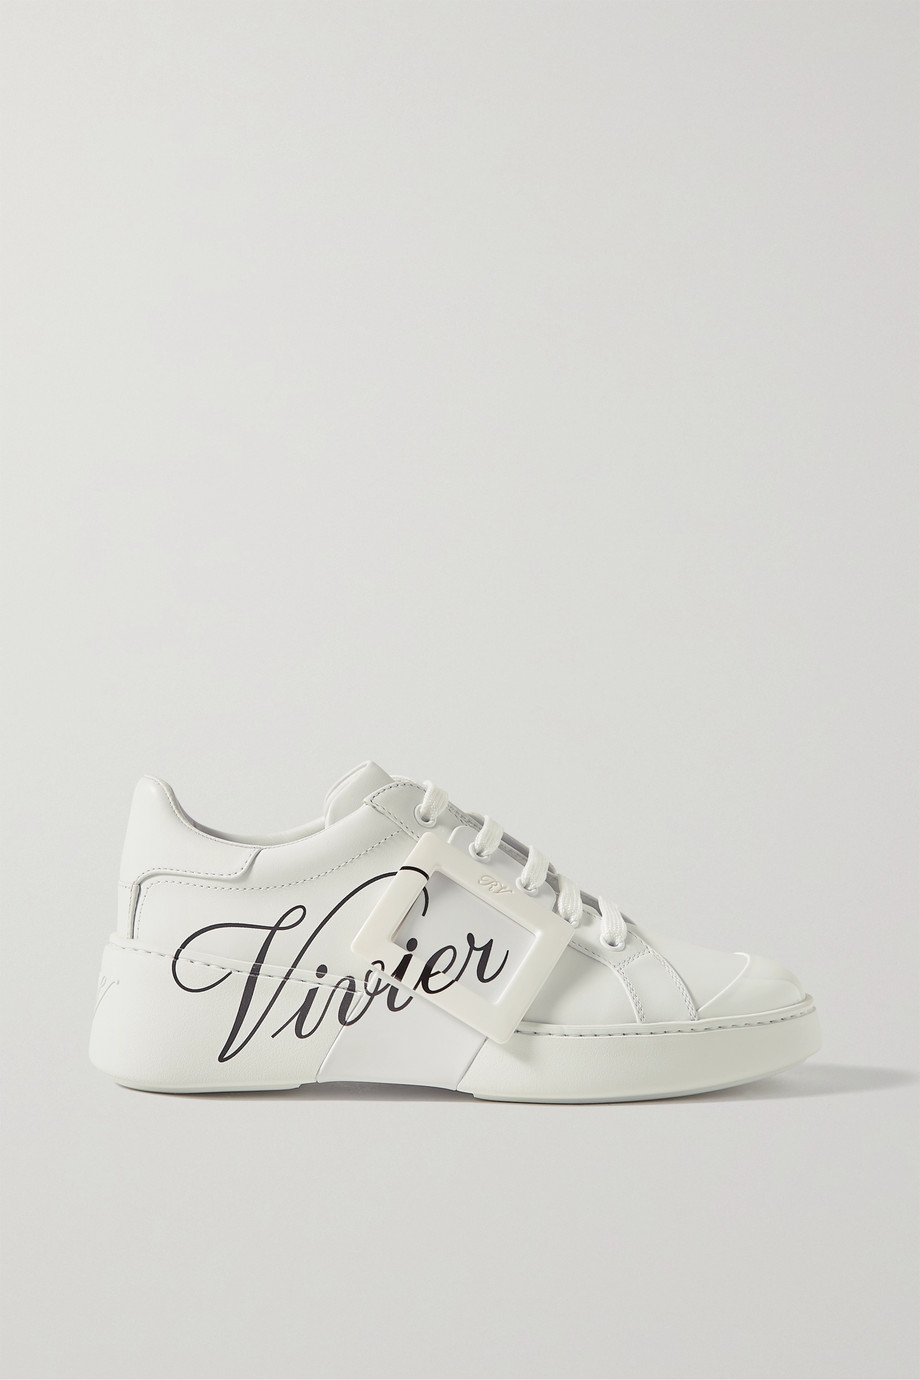 Roger Vivier Viv Skate logo-print leather sneakers